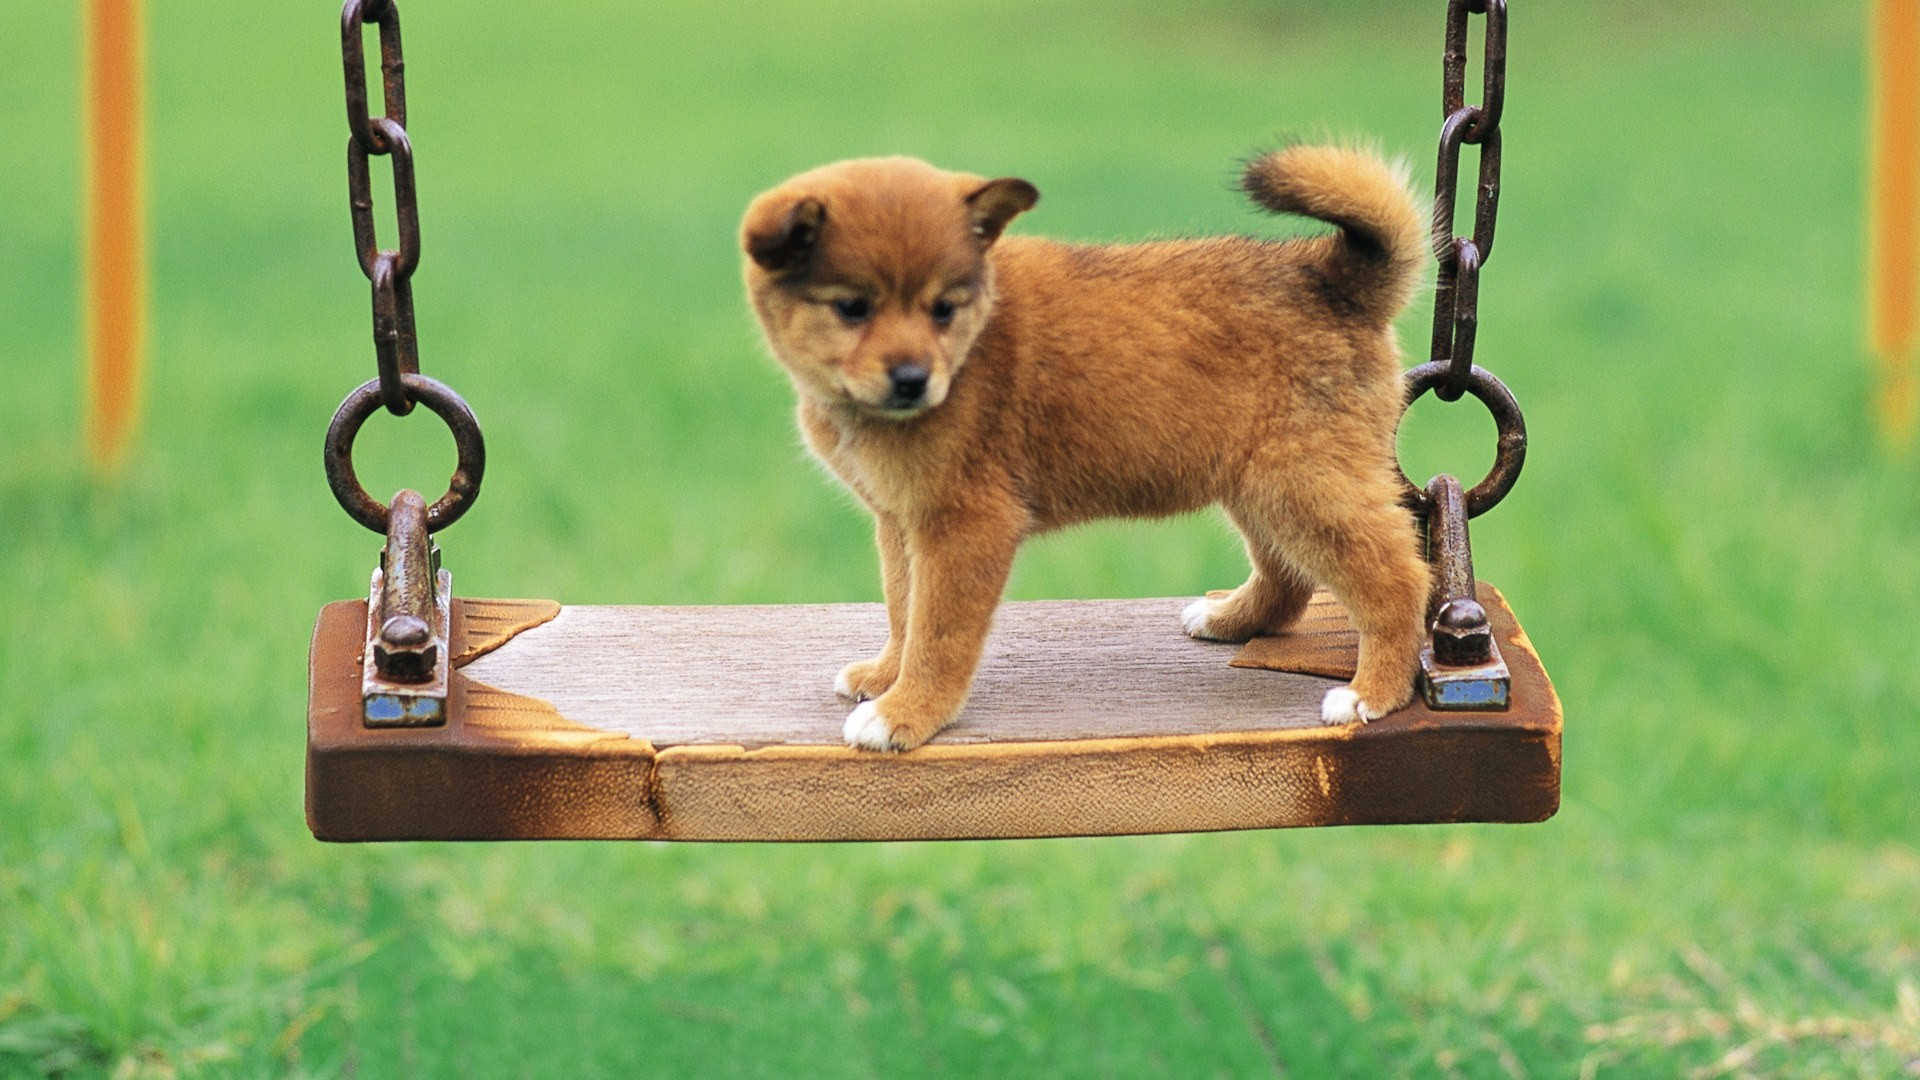 Cute Dog Backgrounds 52 Images